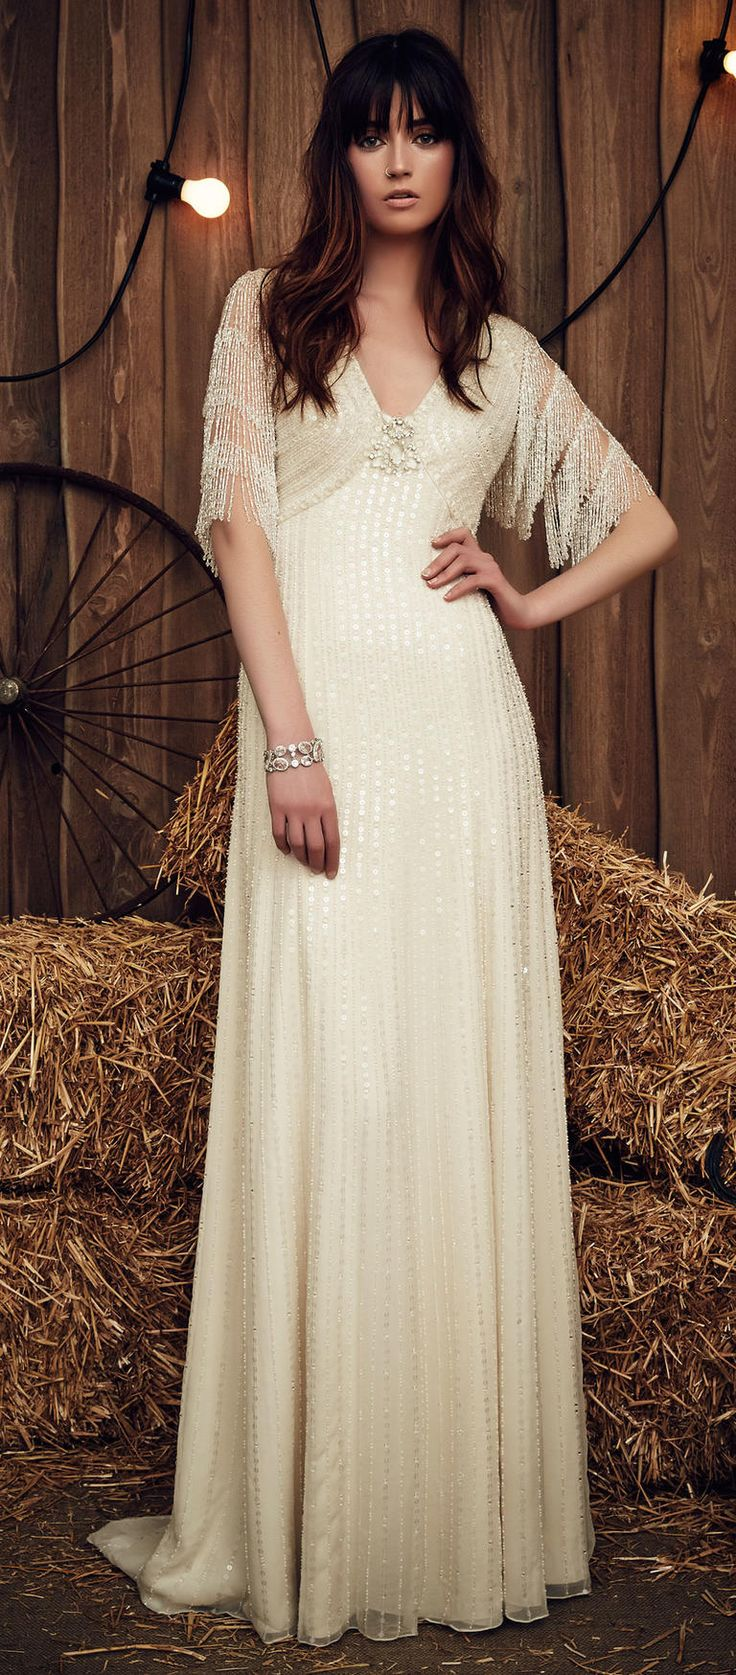 Jenny Packham Spring 2017 Savannah off-white wedding dress with flapper-inspired, beaded sleeves, v-neck, and drop-waist skirt covered in off-white sequins